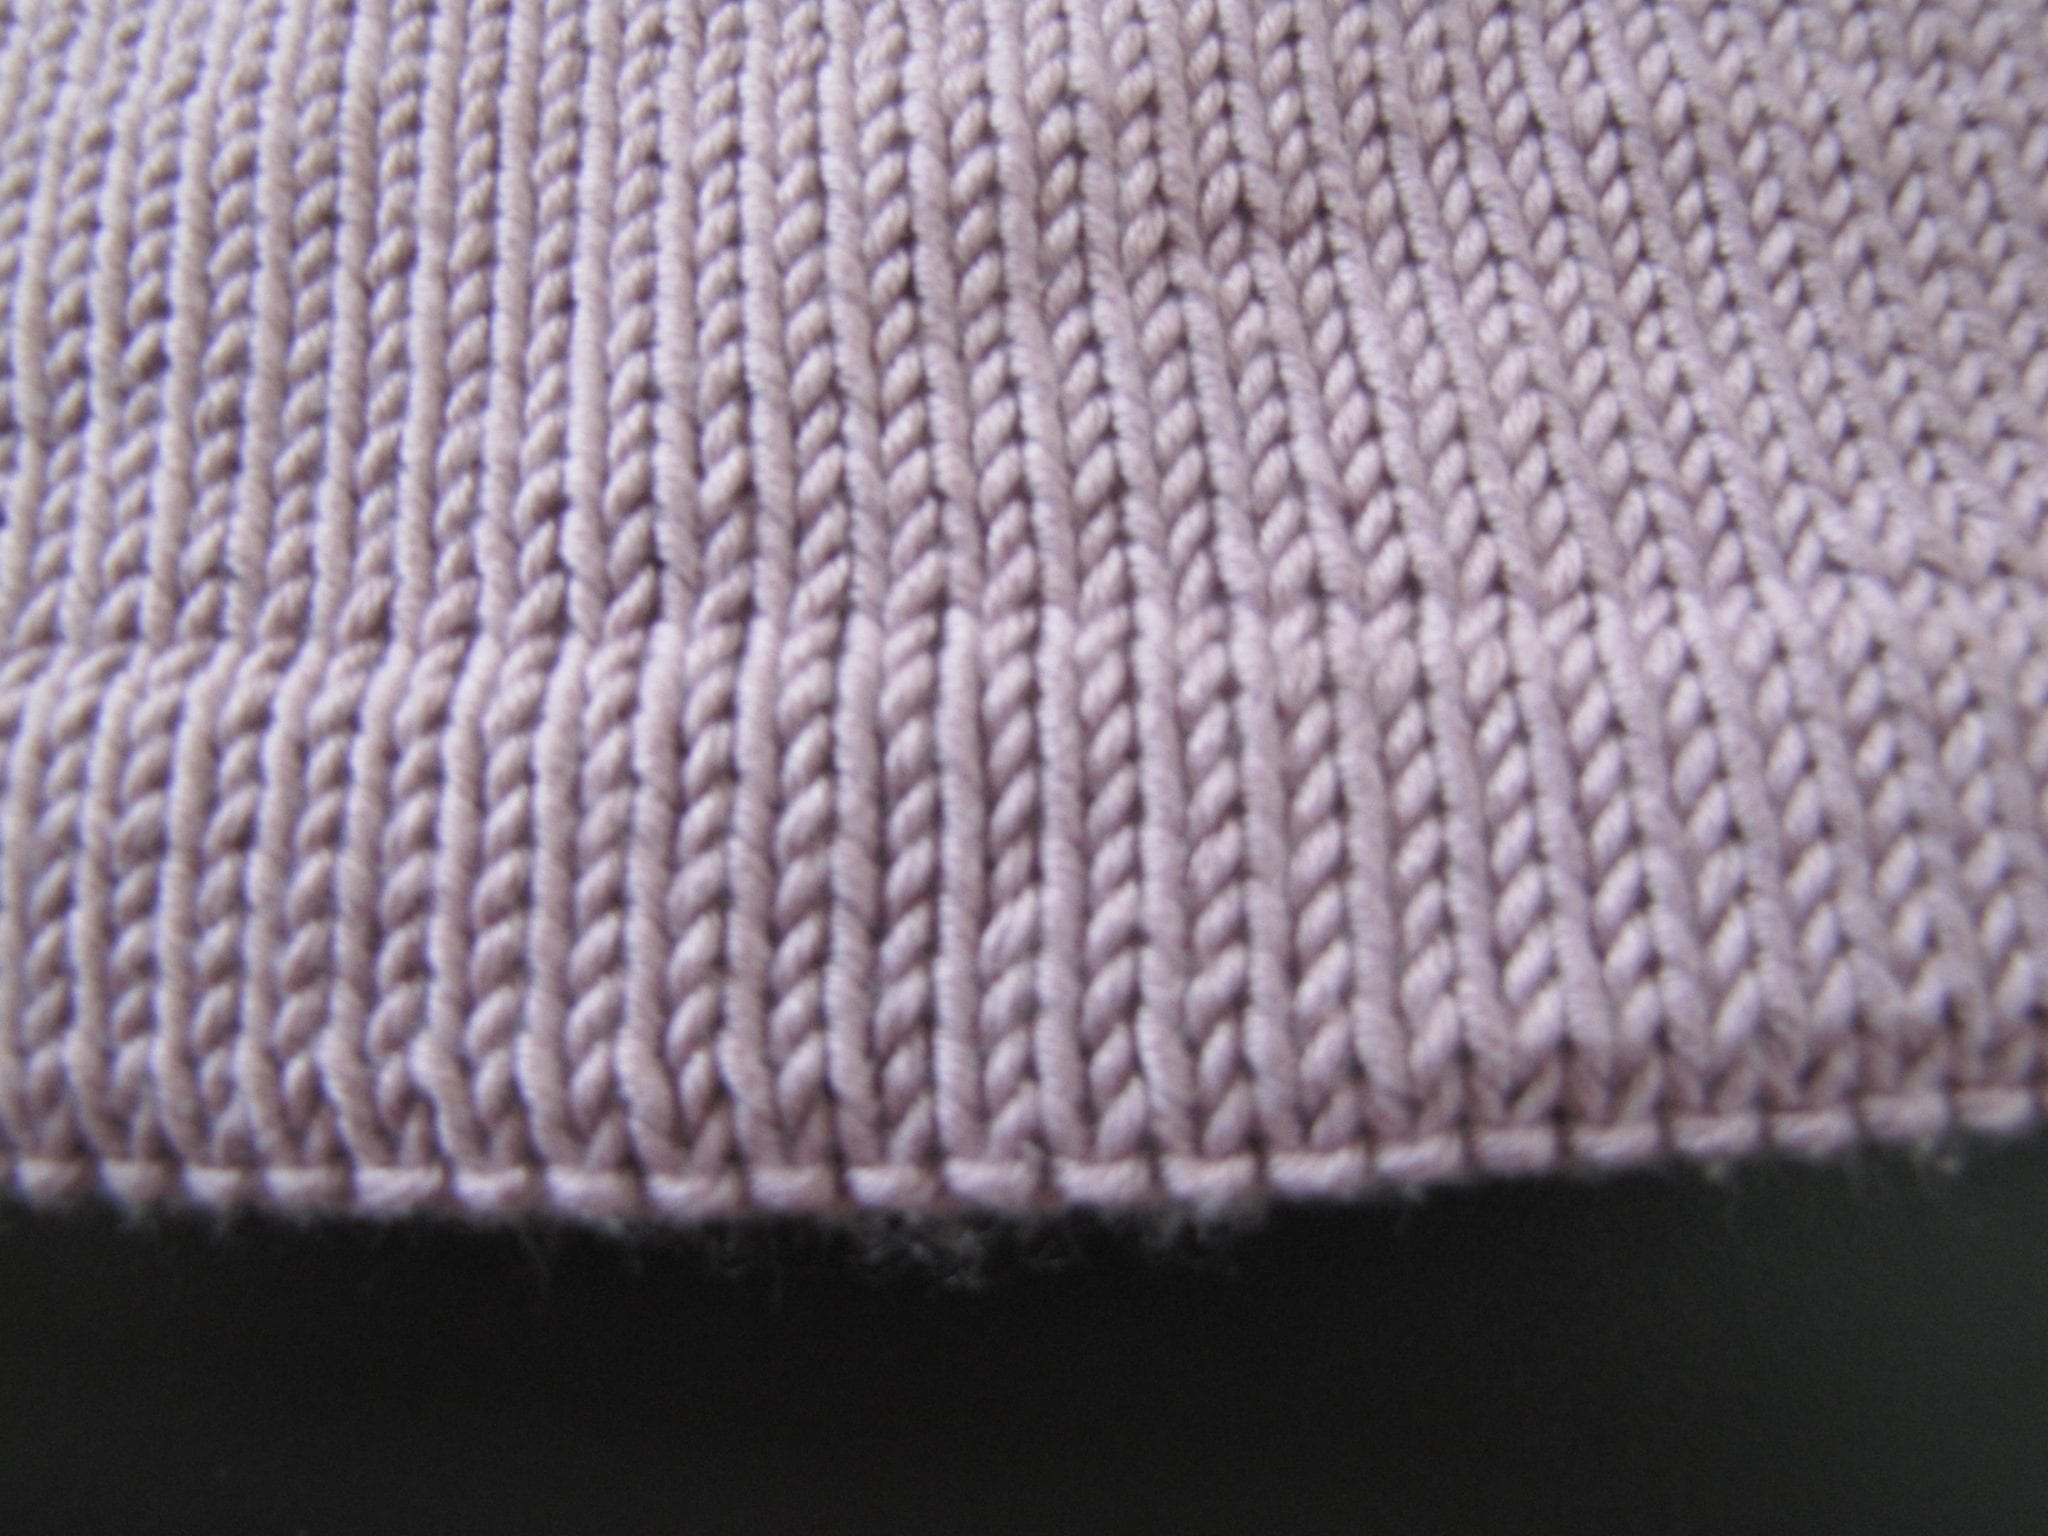 Closeup of a knitted hemmed edge